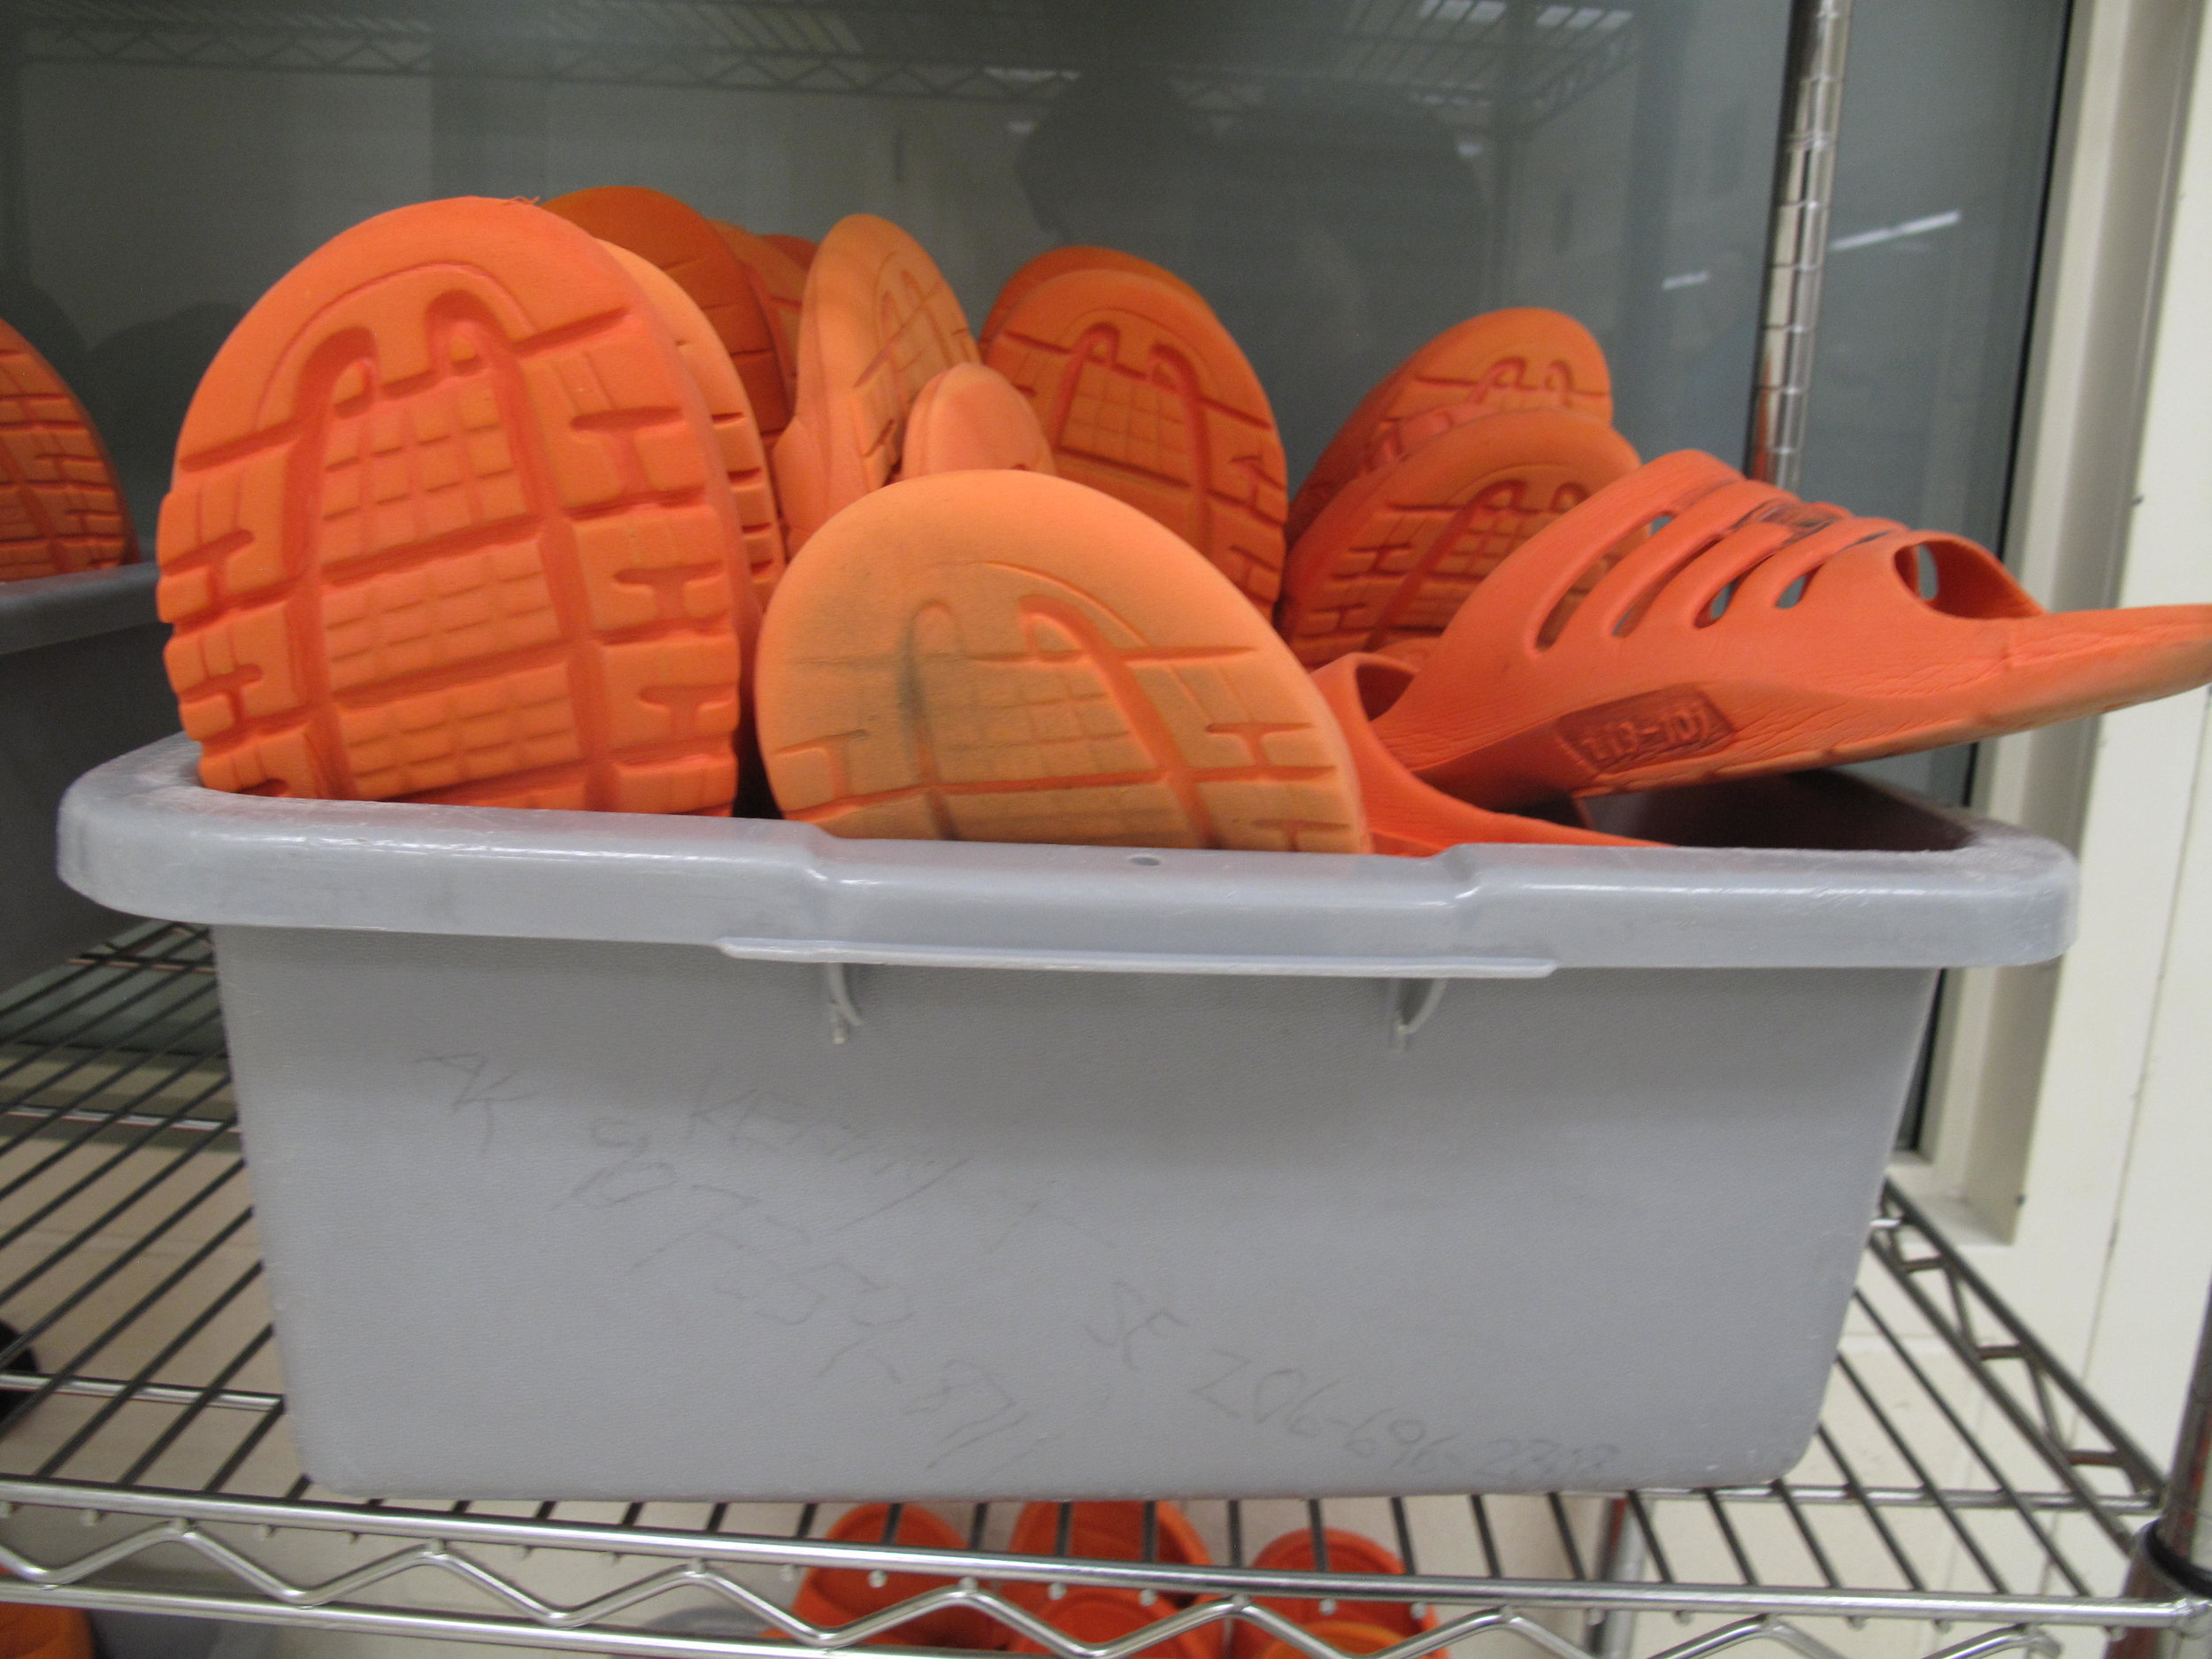 Inmate slippers.   CREDIT: ANNA BOIKO-WEYRAUCH / FINDING FIXES.